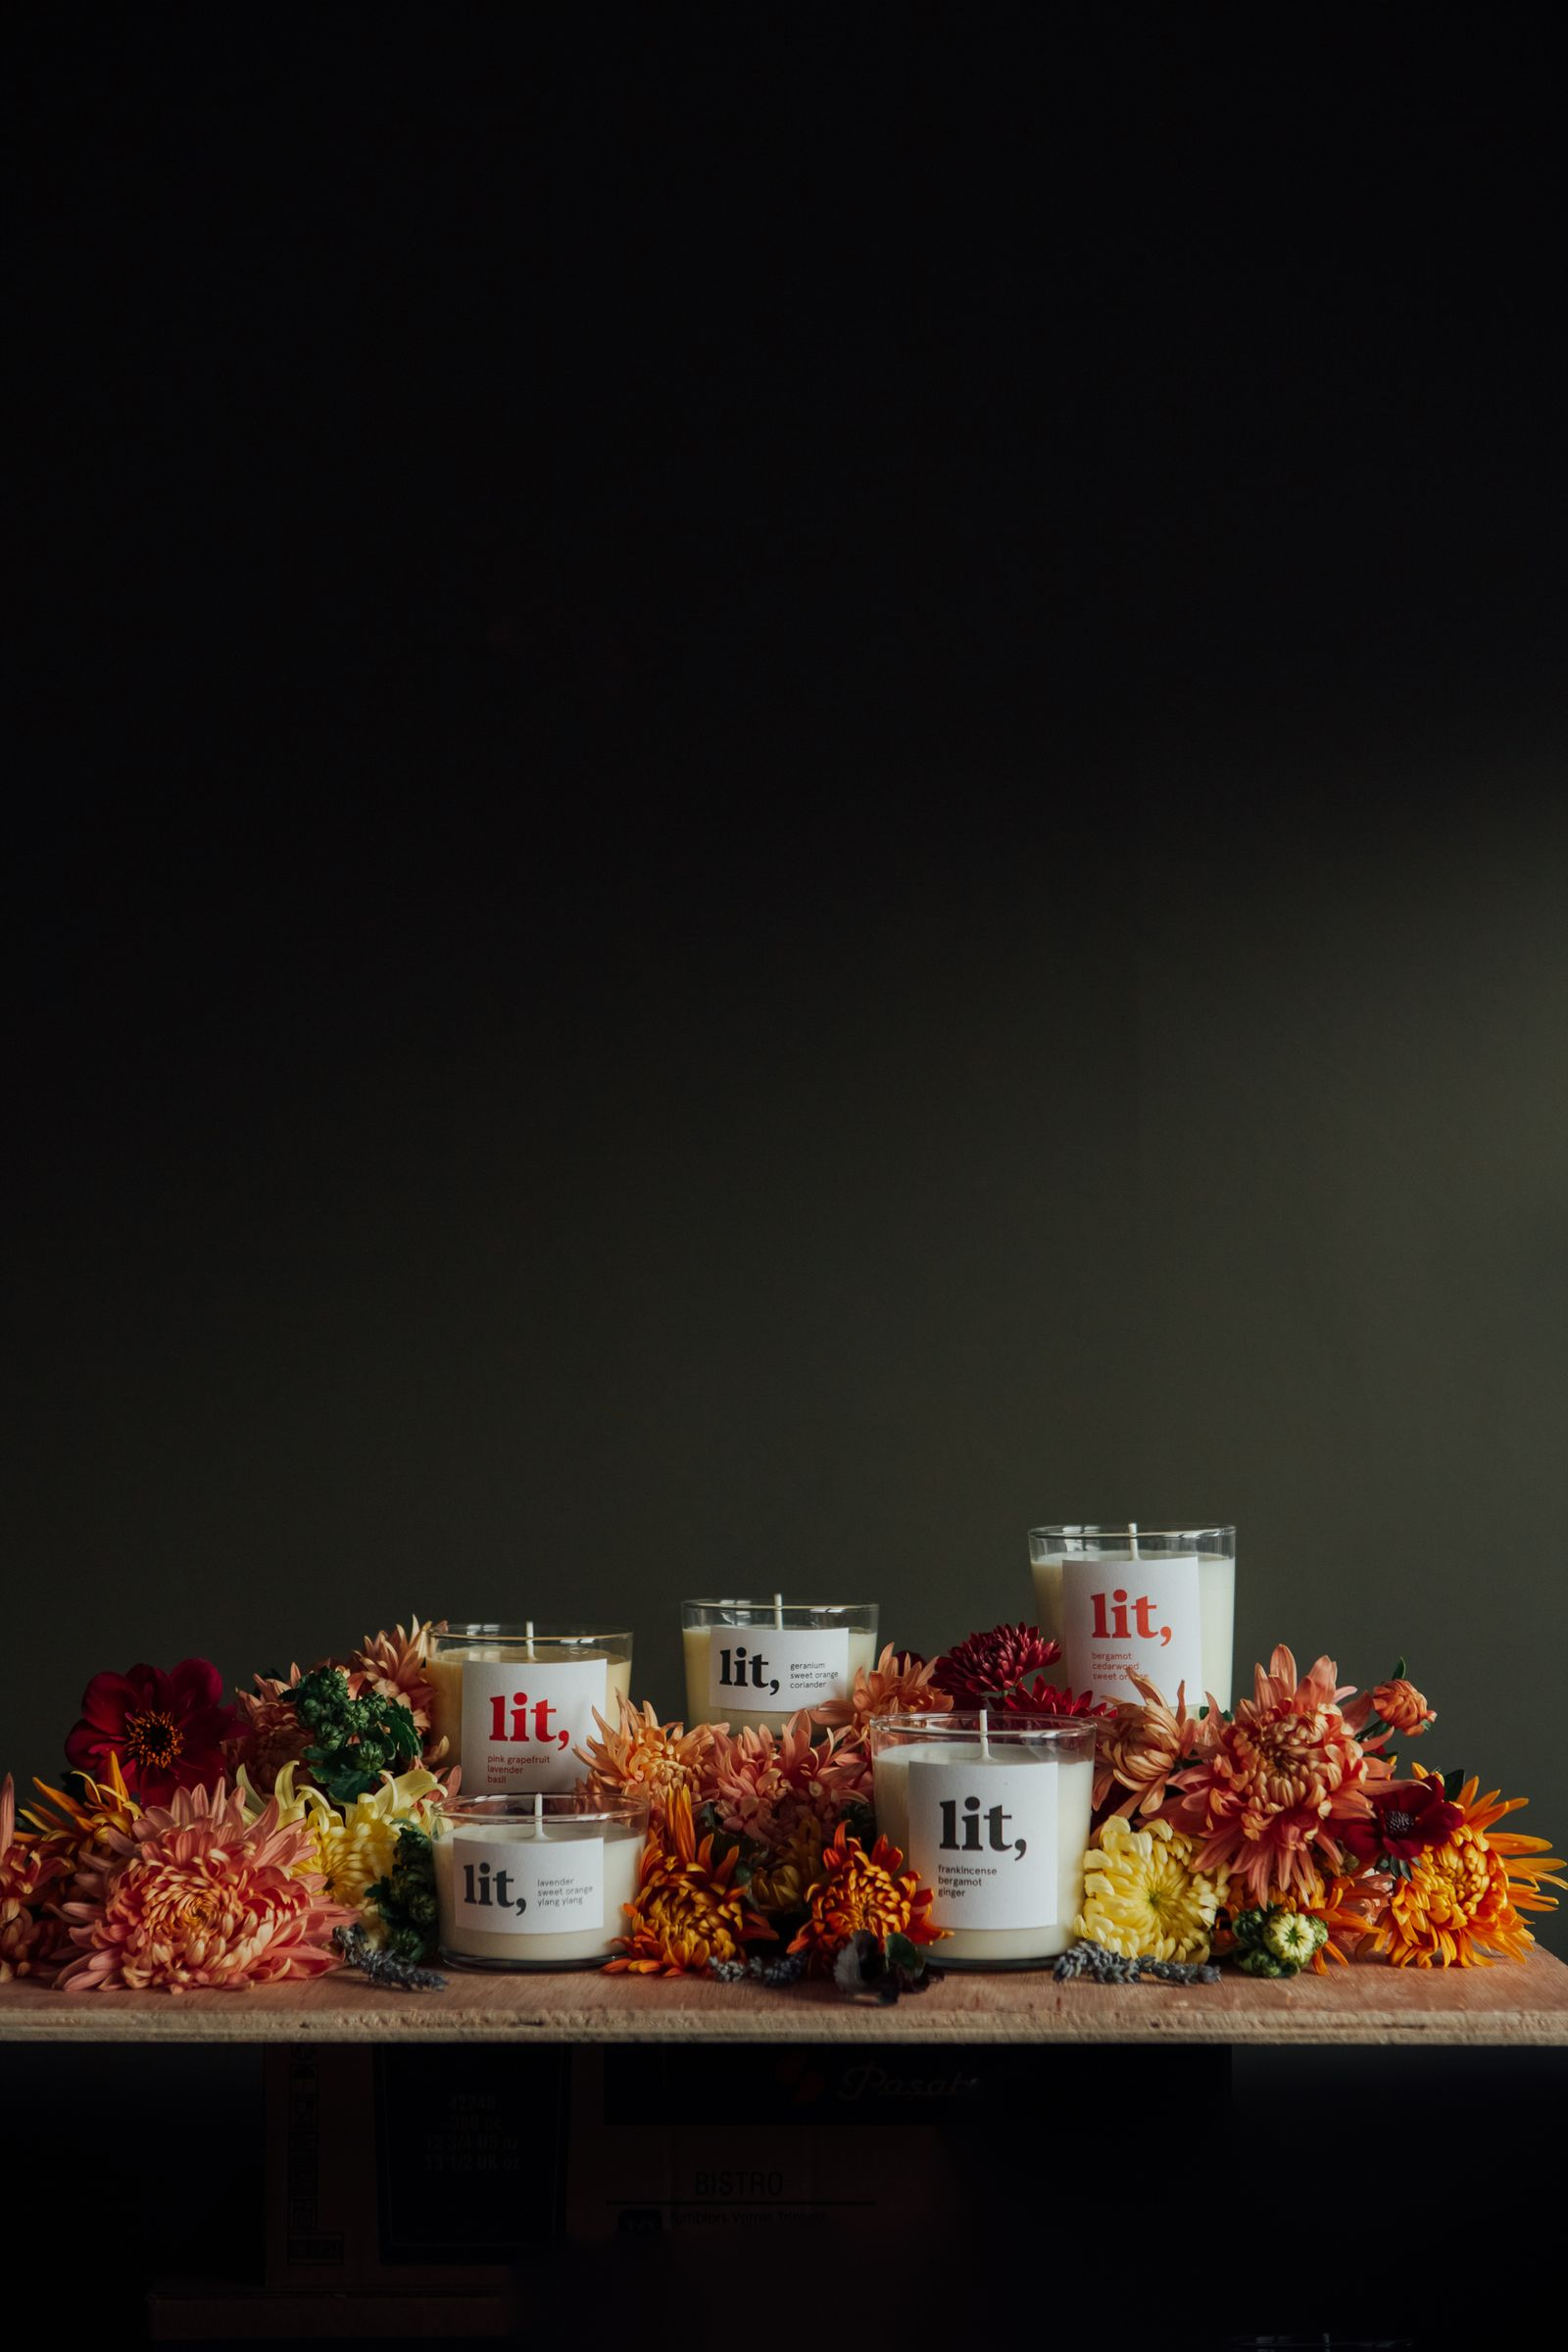 A photograph of the Lit Homeware candles.